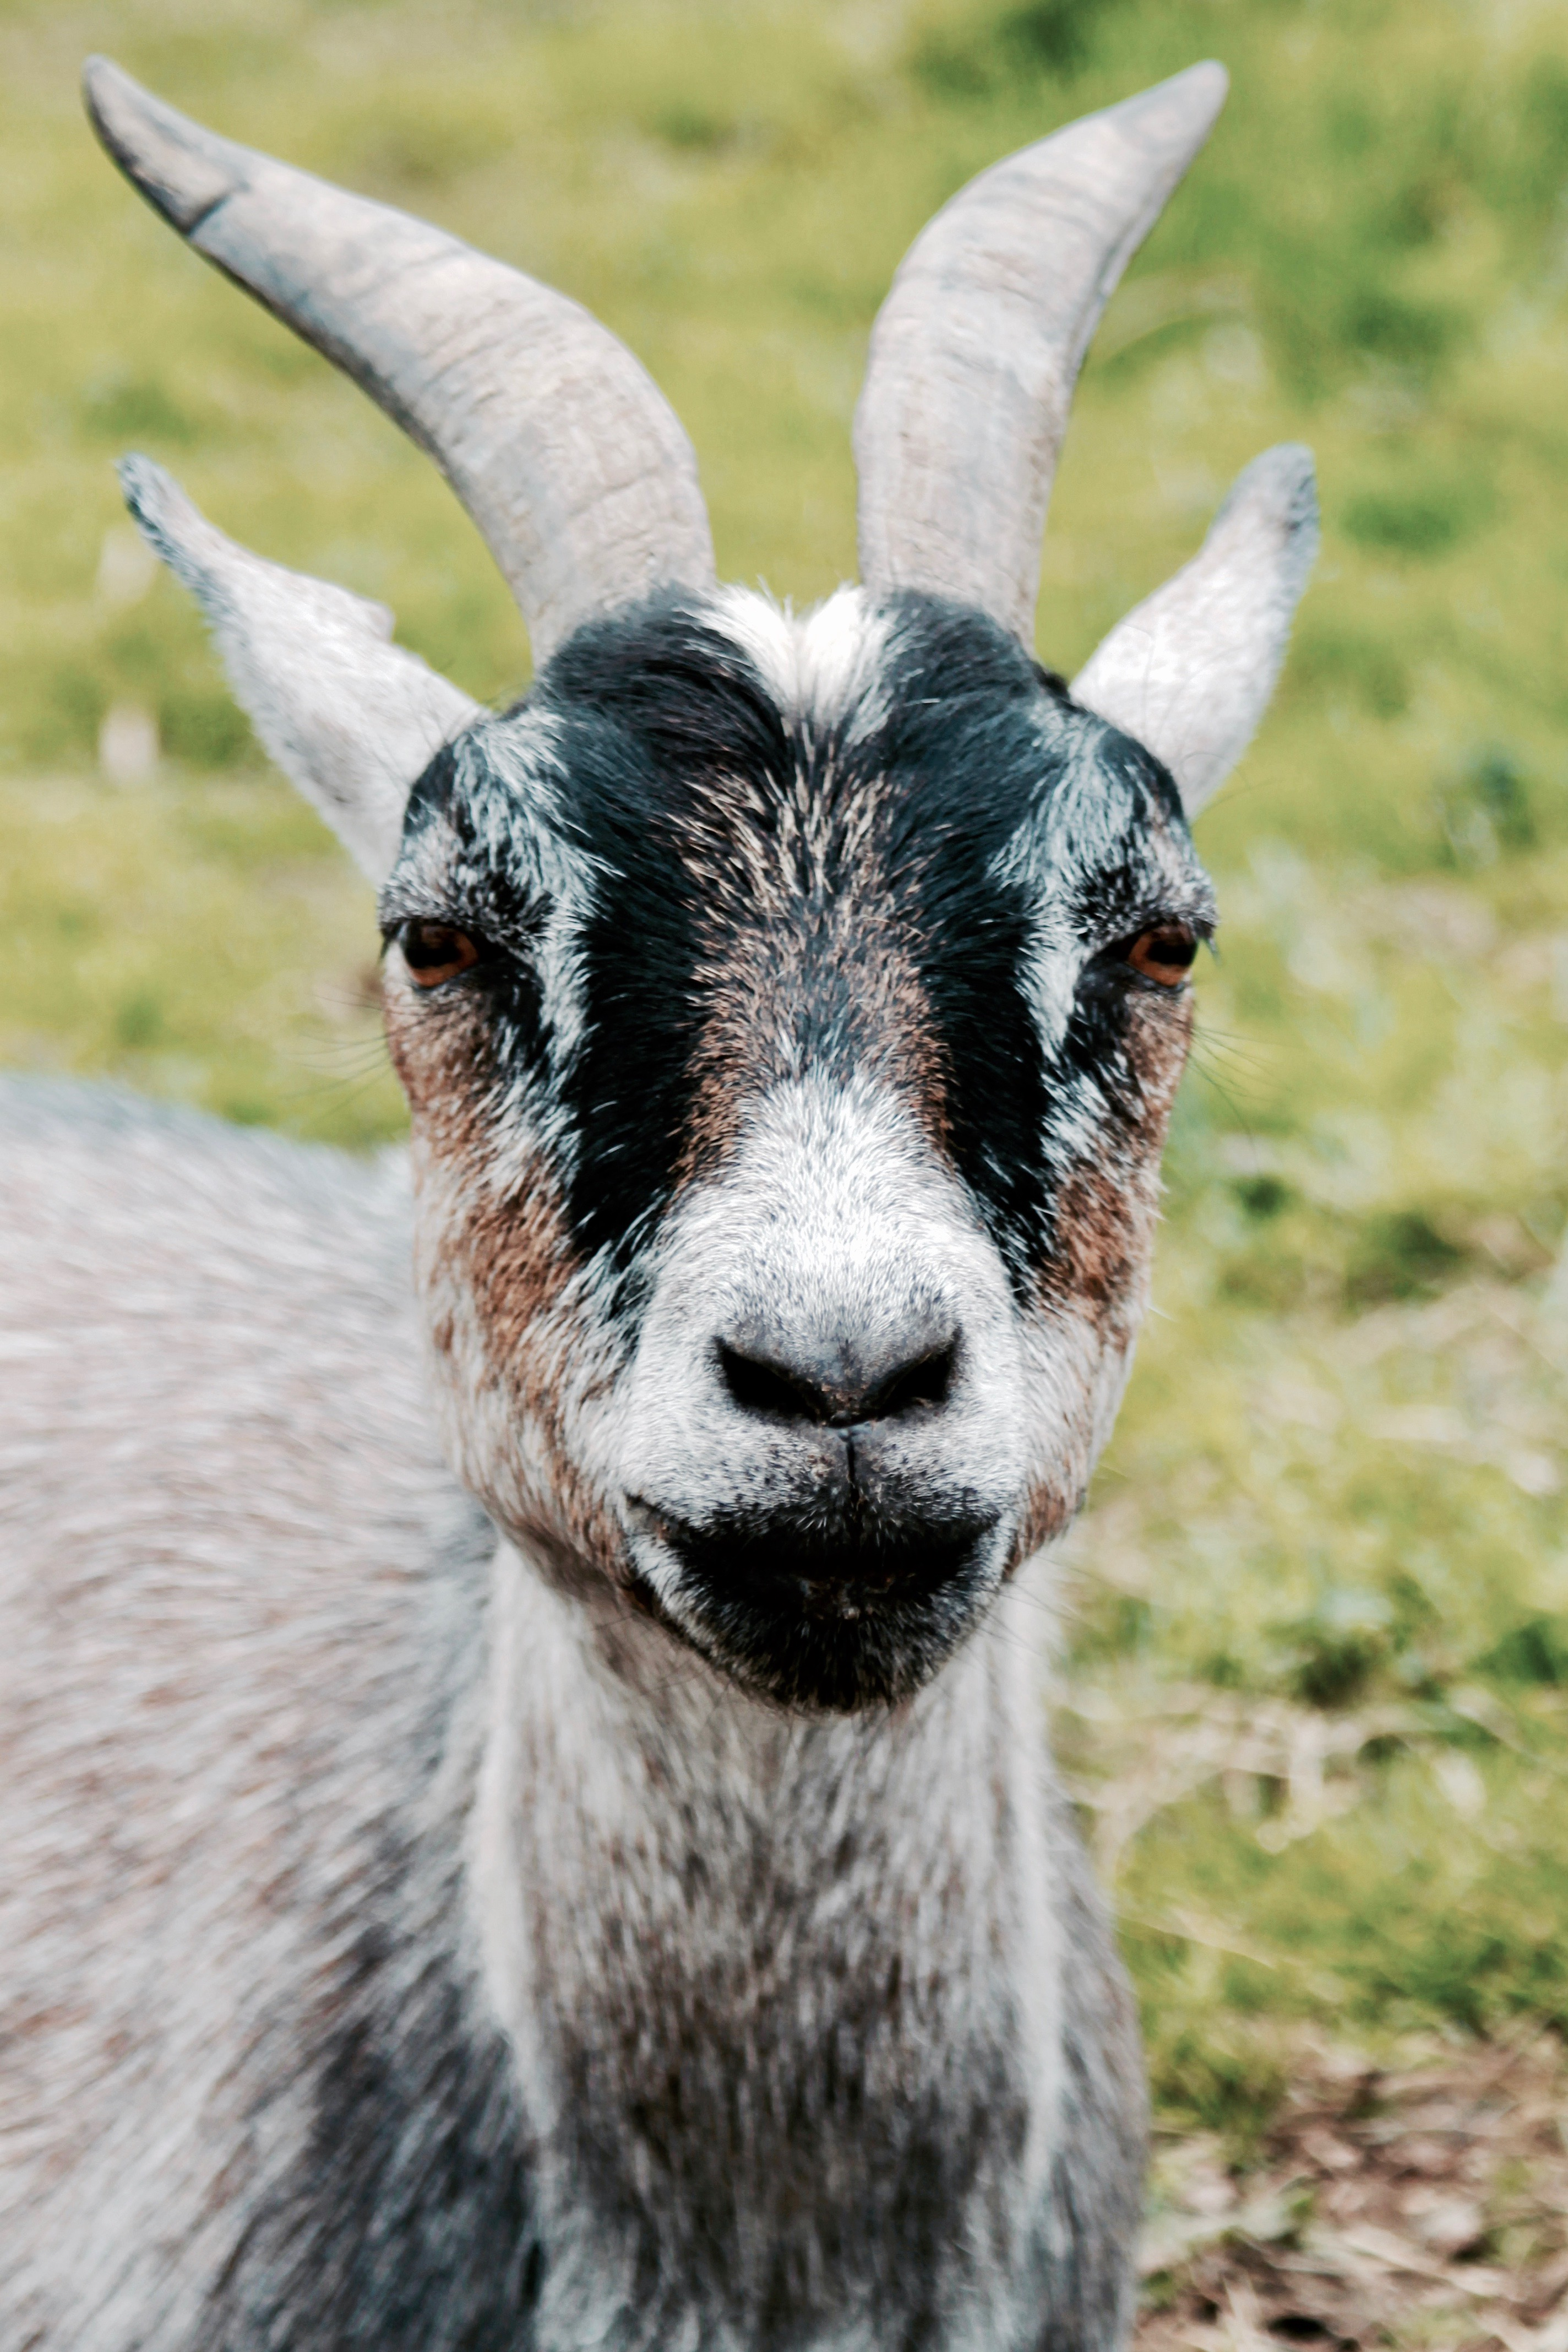 Beautiful Animal Pictures Wallpaper Brown Ram Goat 183 Free Stock Photo